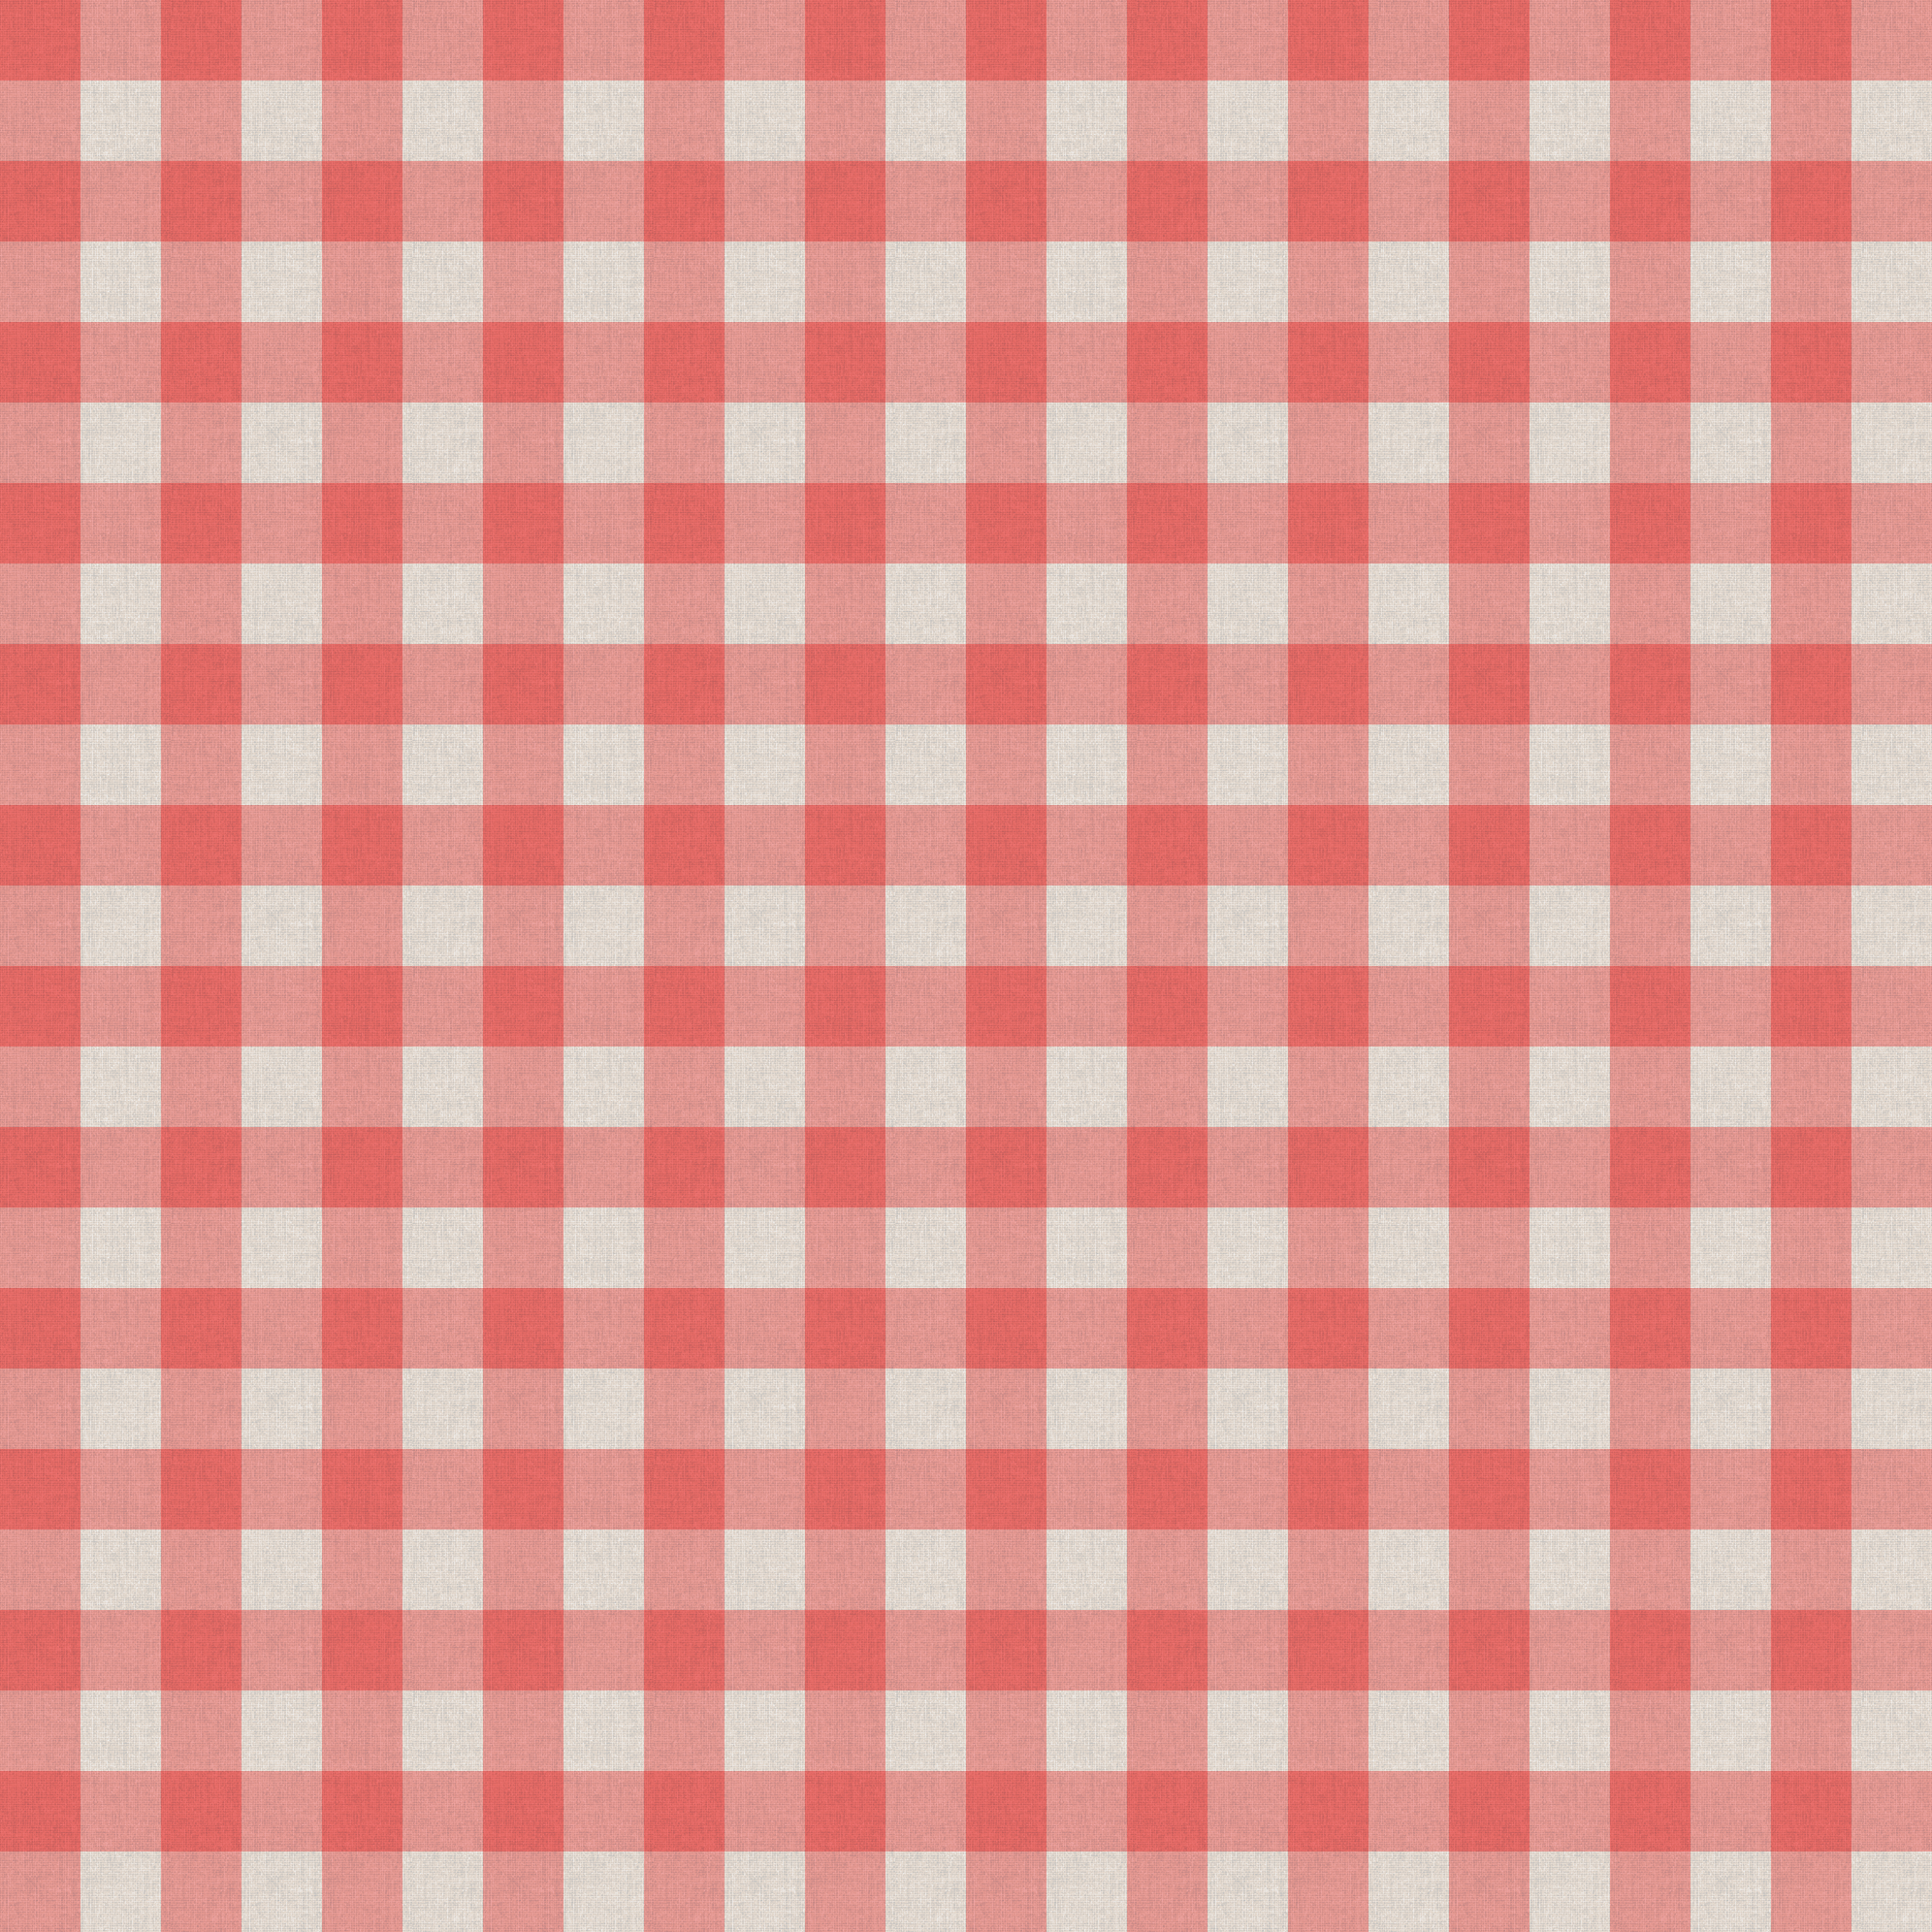 redwhite kitchen table cloth texture red kitchen table Download as png